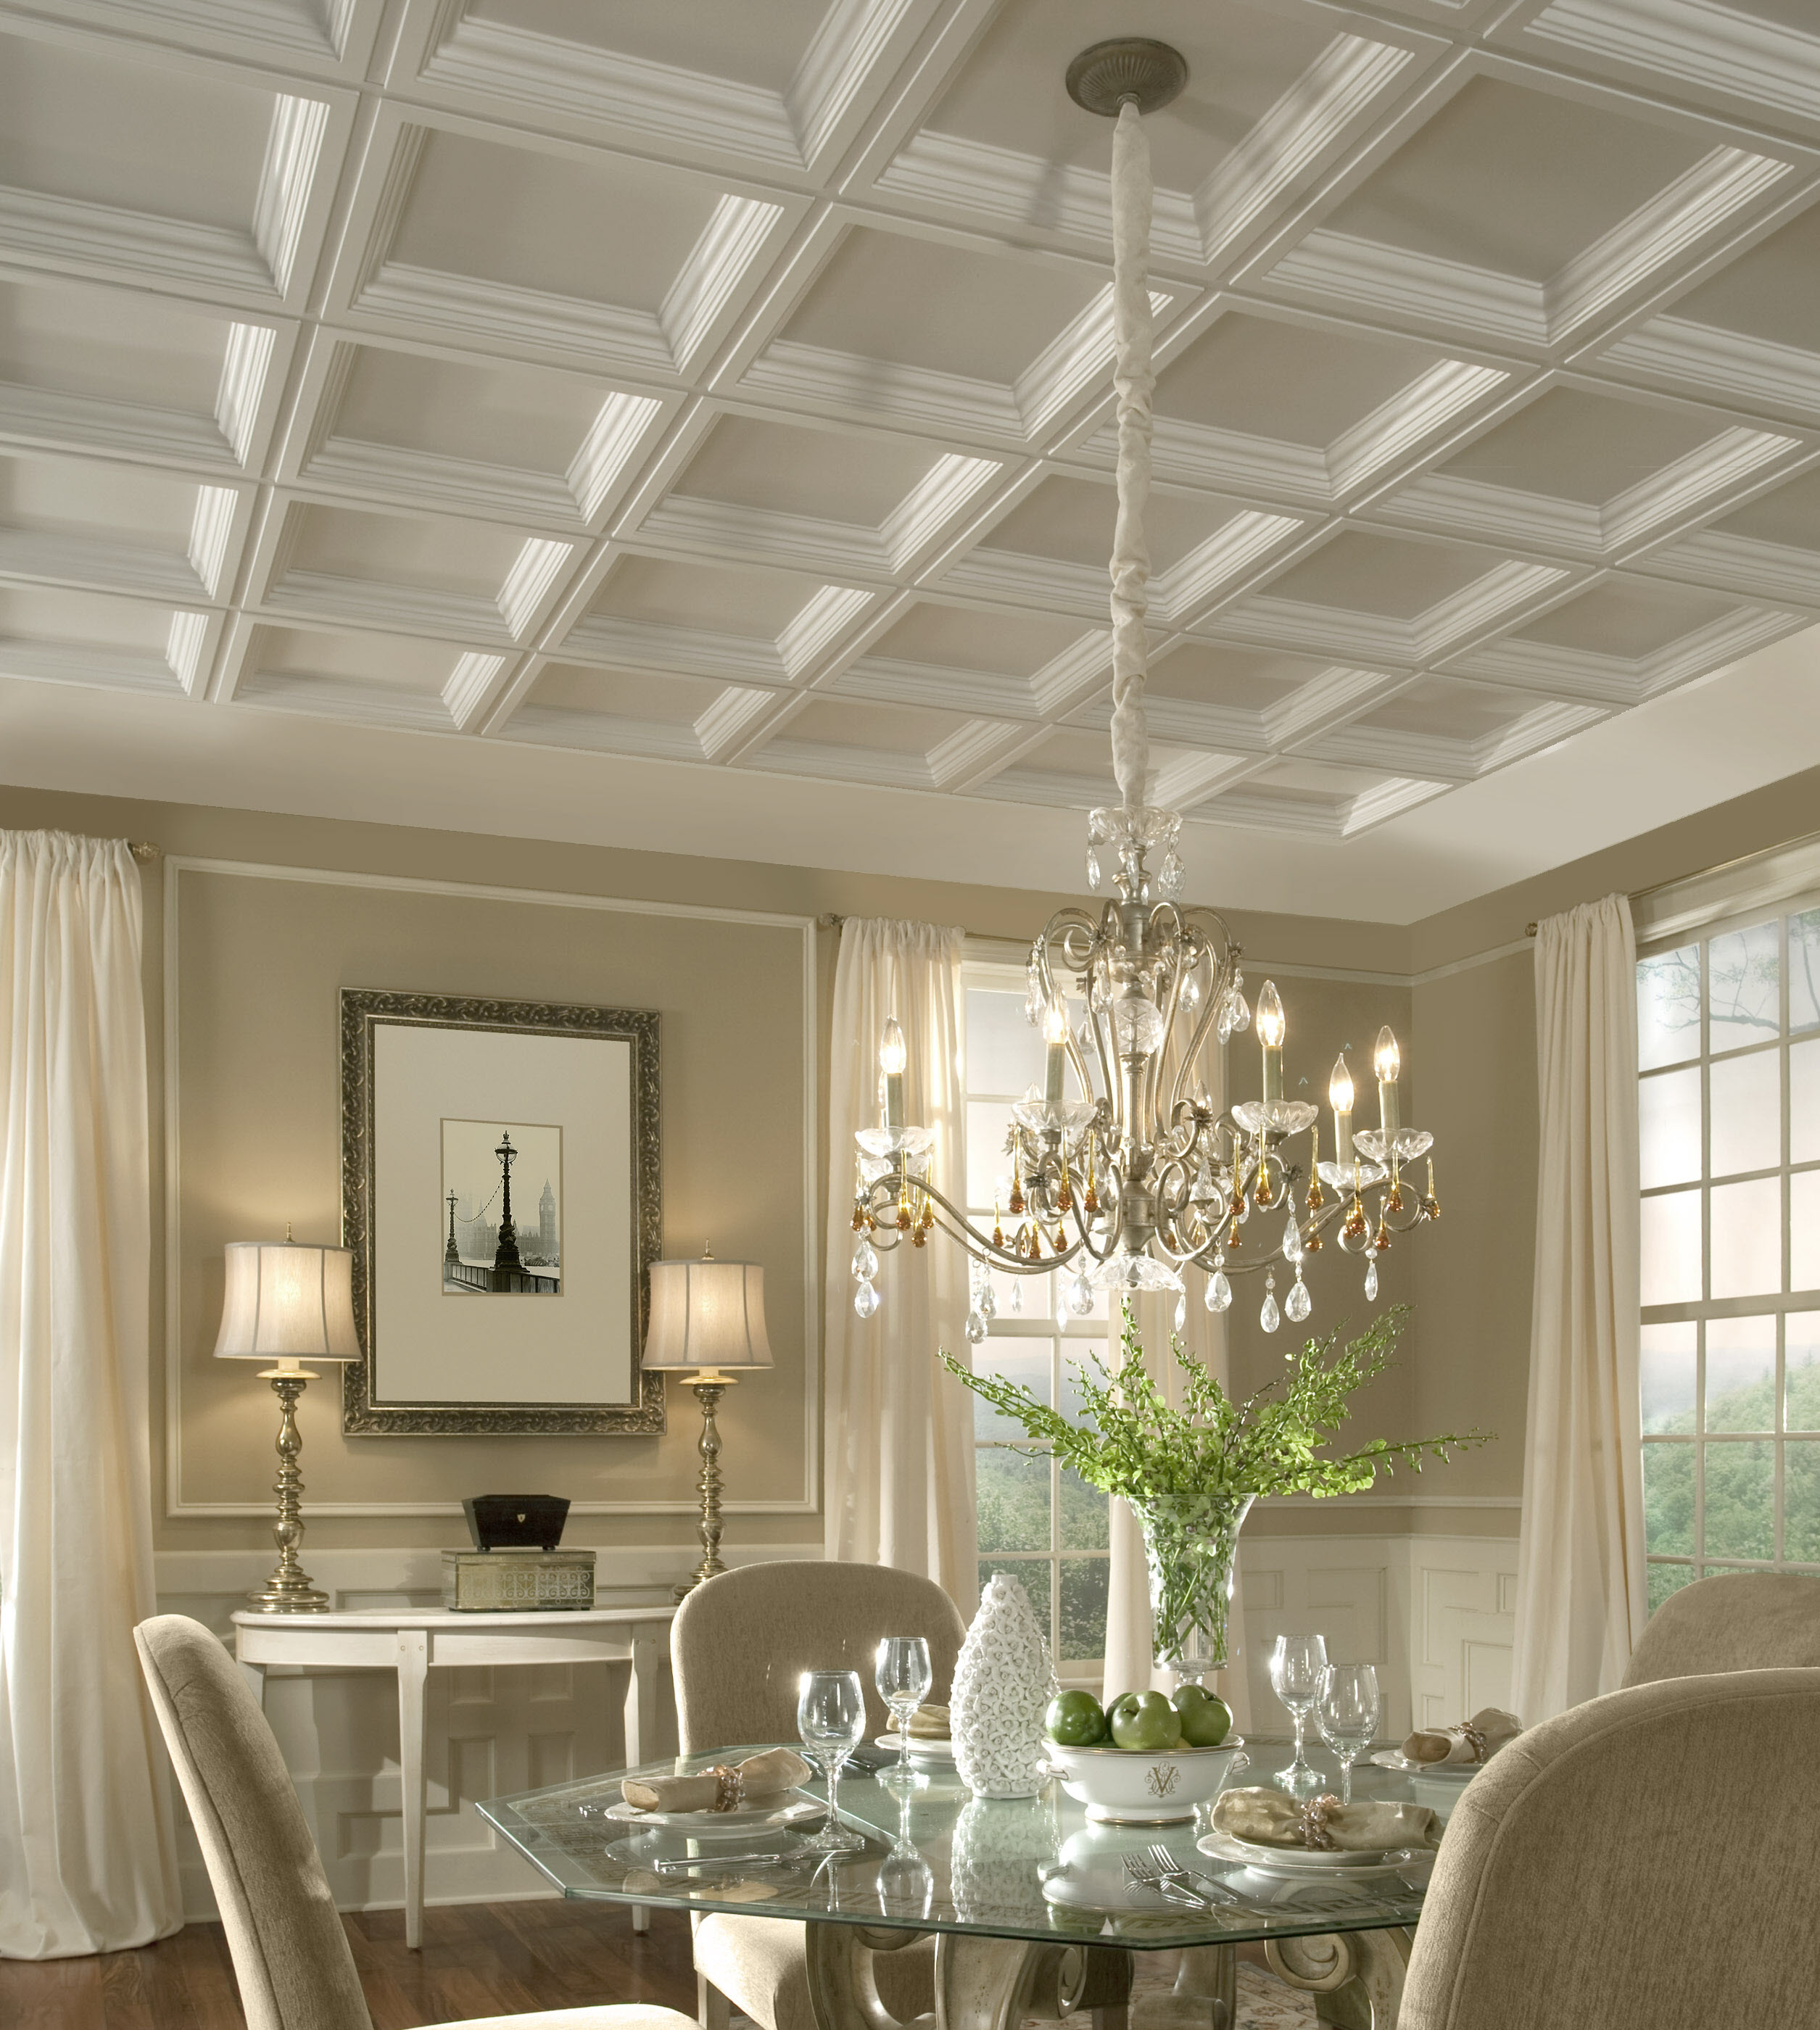 Cool 12X12 Acoustic Ceiling Tiles Small 2 X 4 Drop Ceiling Tiles Regular 24 X 24 Ceiling Tiles 4 X 12 White Ceramic Subway Tile Young 4X4 Ceiling Tiles Fresh6 X 12 Ceramic Tile Black Ceiling Tiles | Armstrong Ceilings Residential